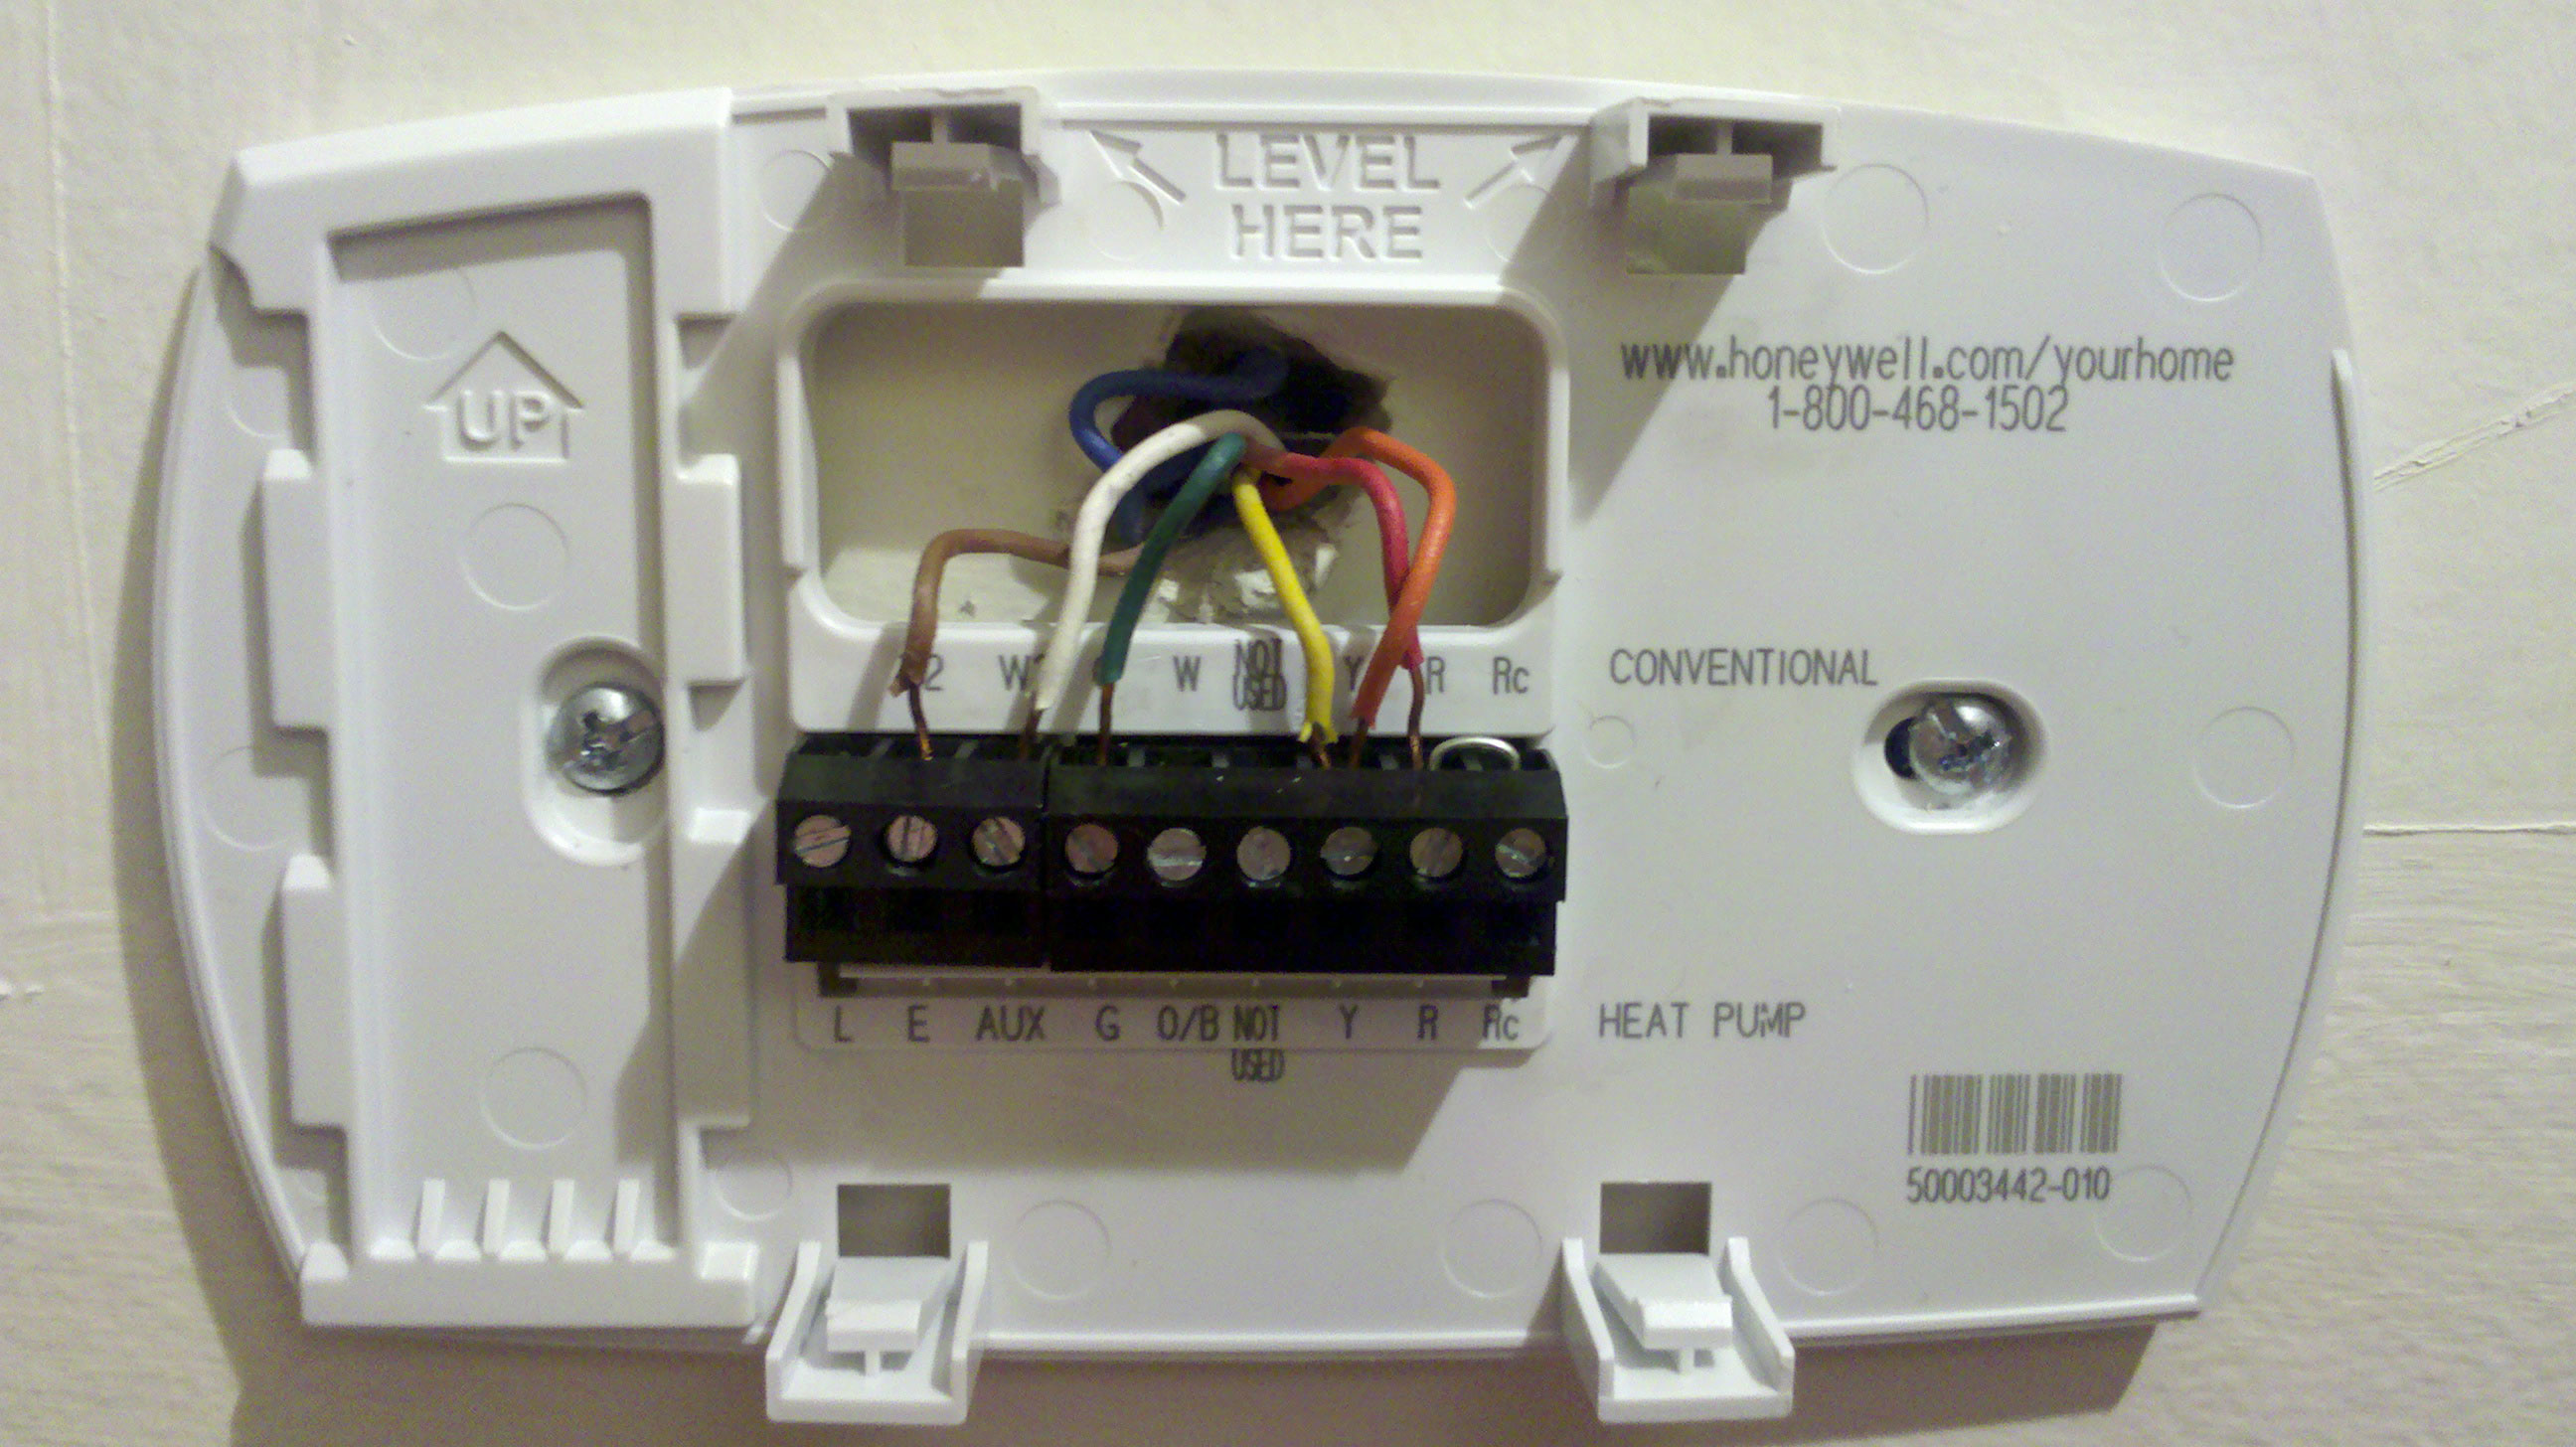 Heat Pump Honeywell Thermostat Wiring Diagram Mcquay Images Of